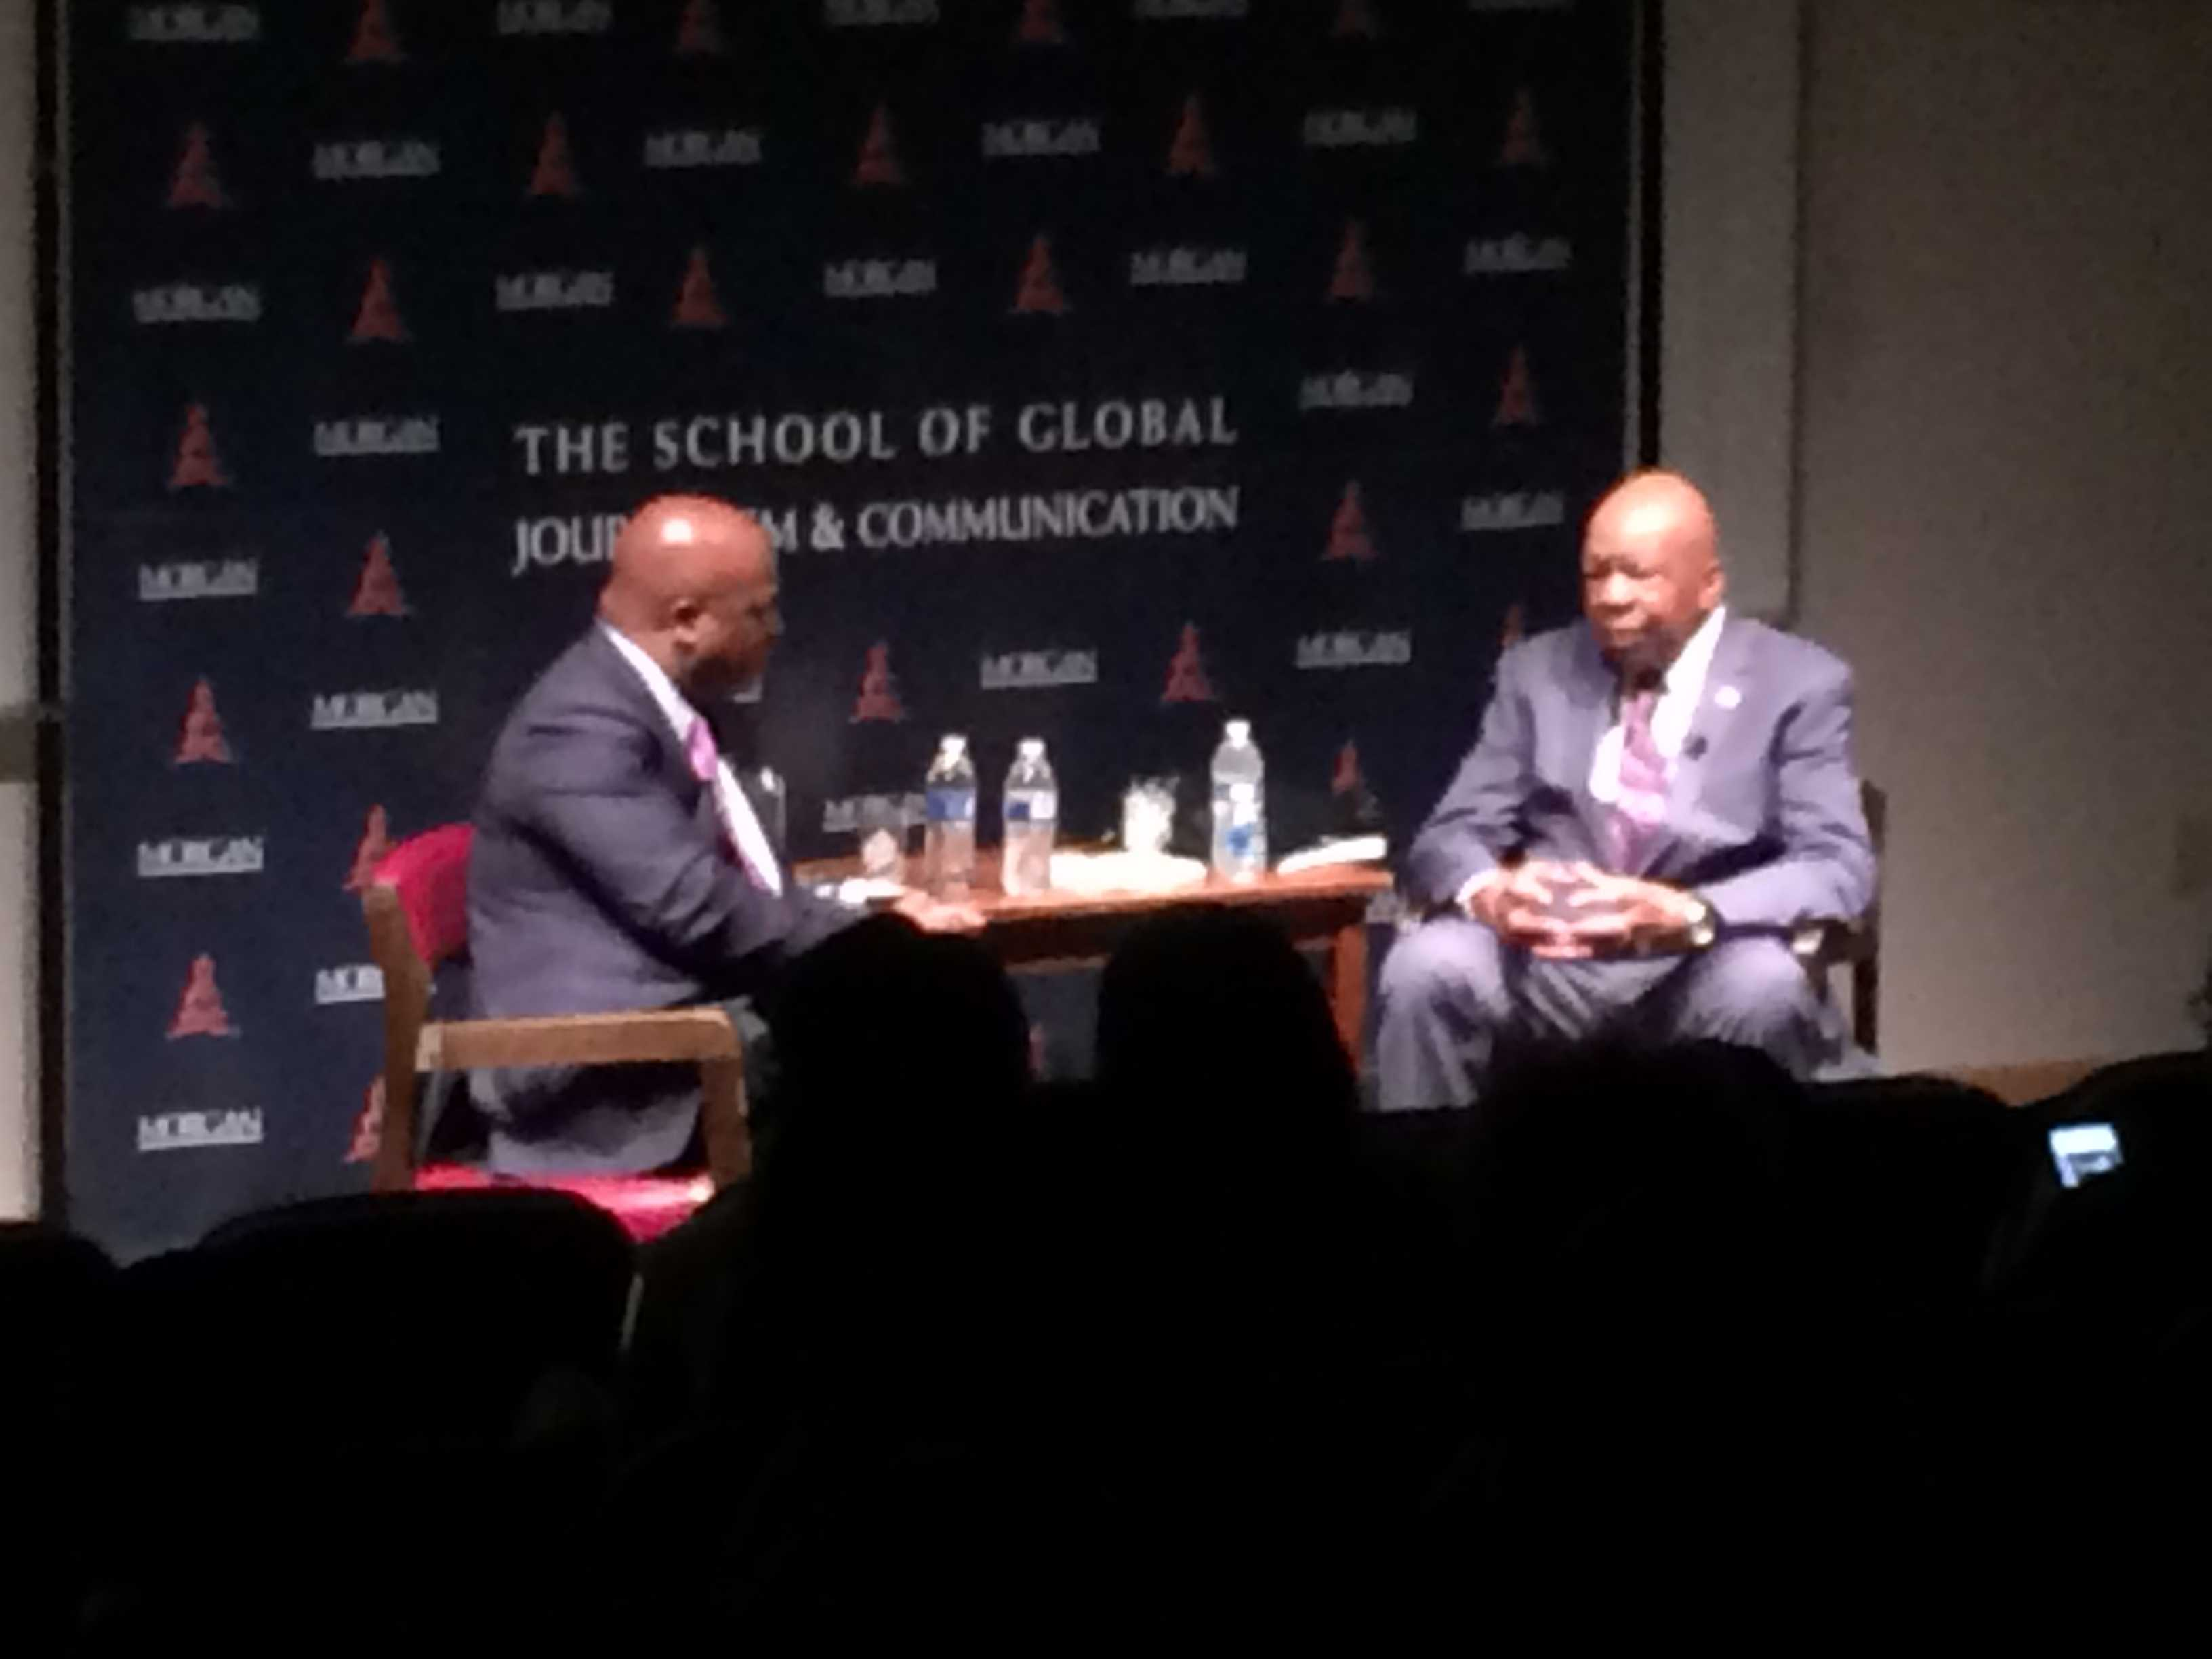 Vic Carter (left) and Rep. Elijah Cummings (right) in the Master Class interview. Photo credit: Tramon Lucas